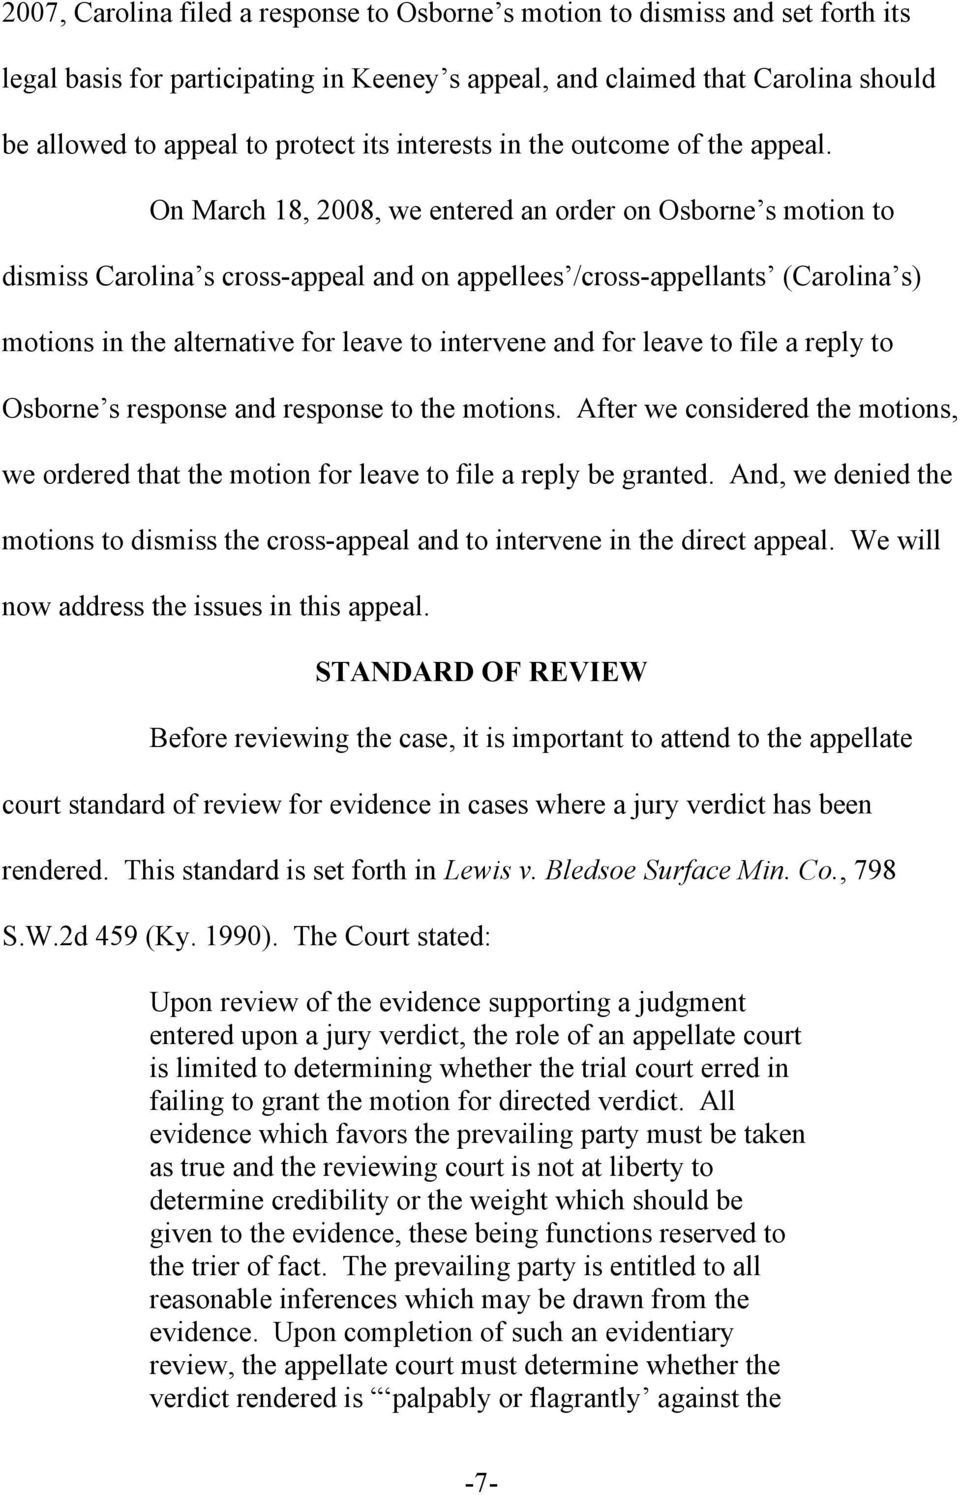 On March 18, 2008, we entered an order on Osborne s motion to dismiss Carolina s cross-appeal and on appellees /cross-appellants (Carolina s) motions in the alternative for leave to intervene and for